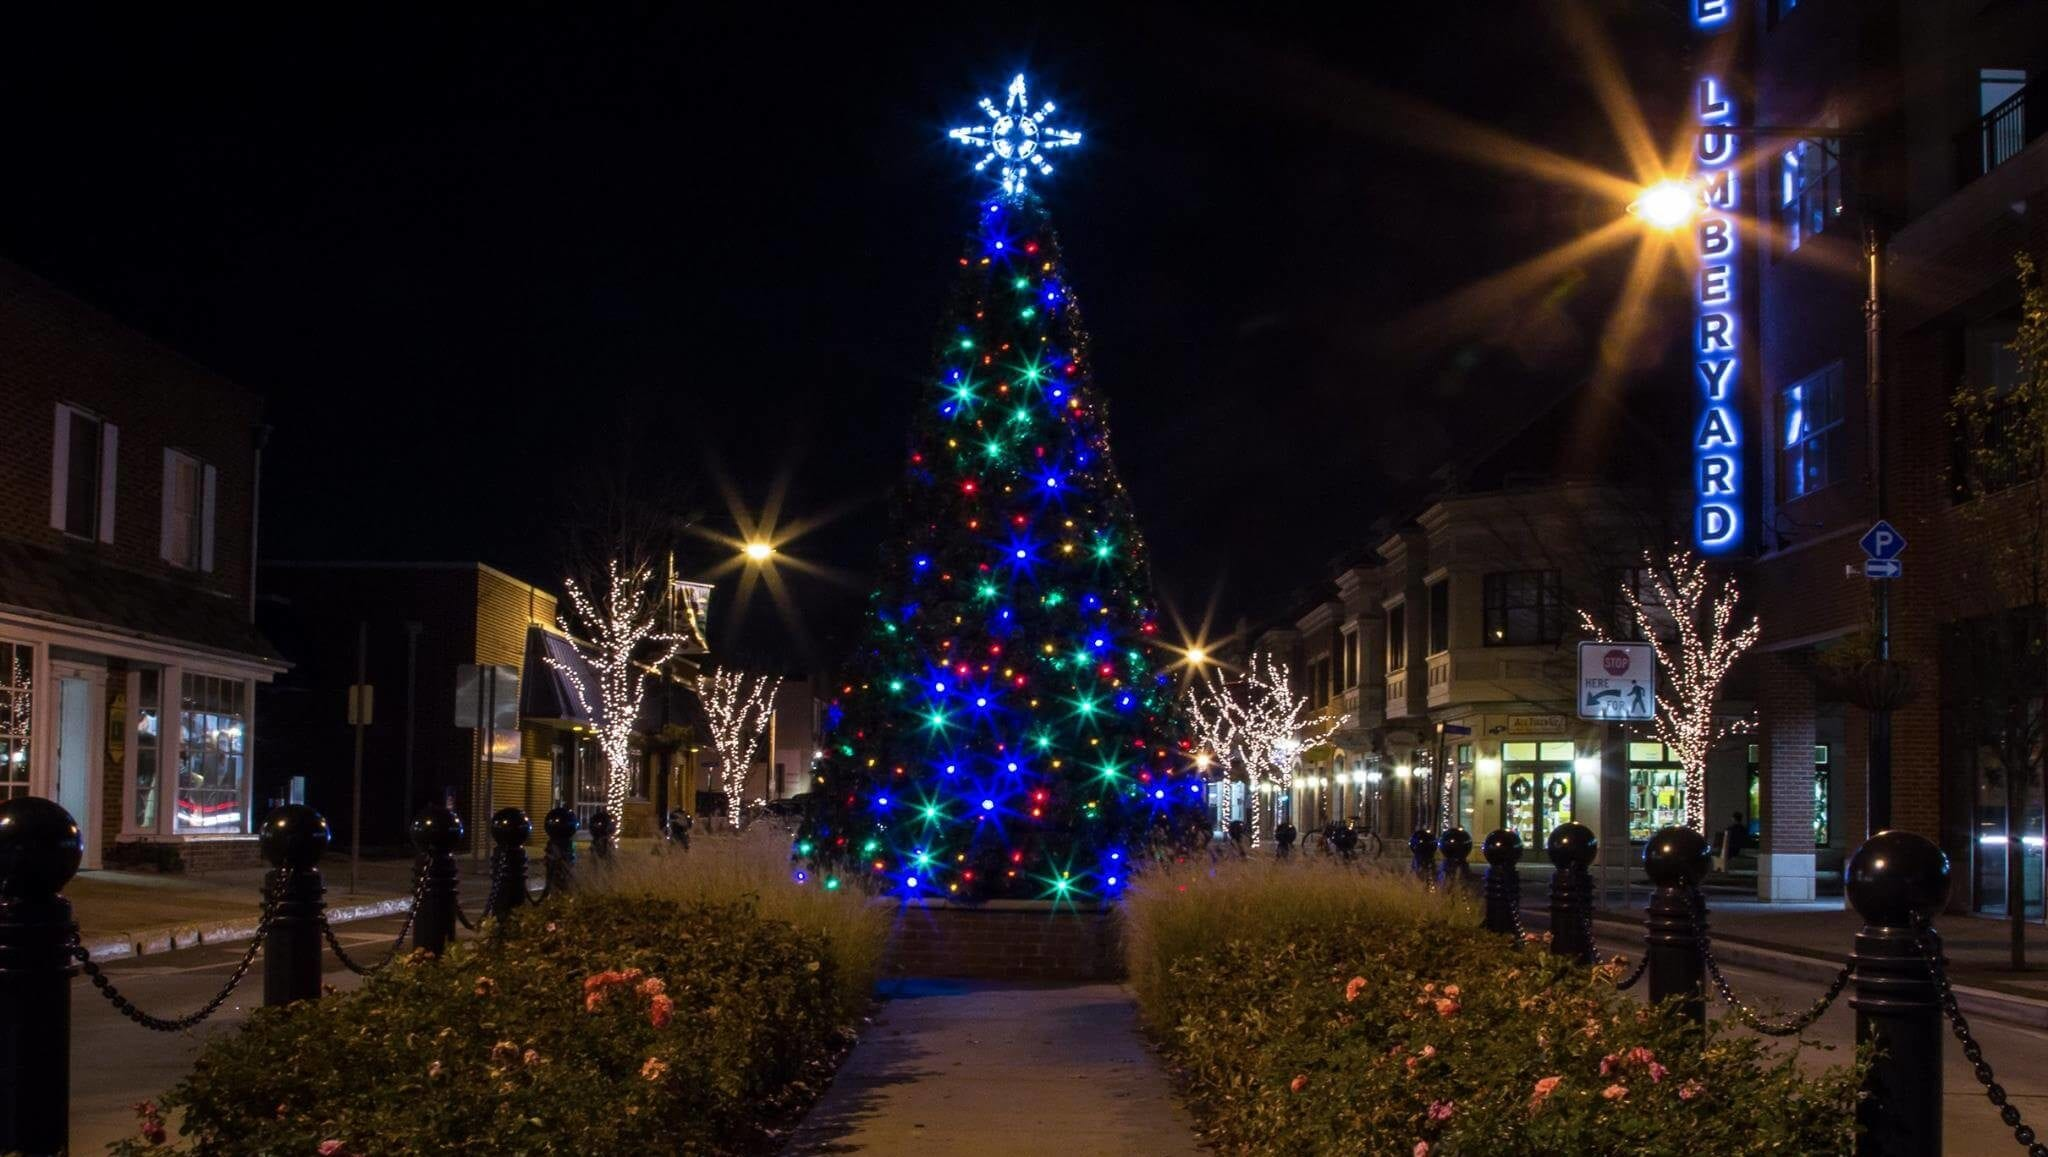 2020 Christmas House Tours In Gloucester County , New Jersey New Jersey Christmas Tree Lightings and Parades December 2019